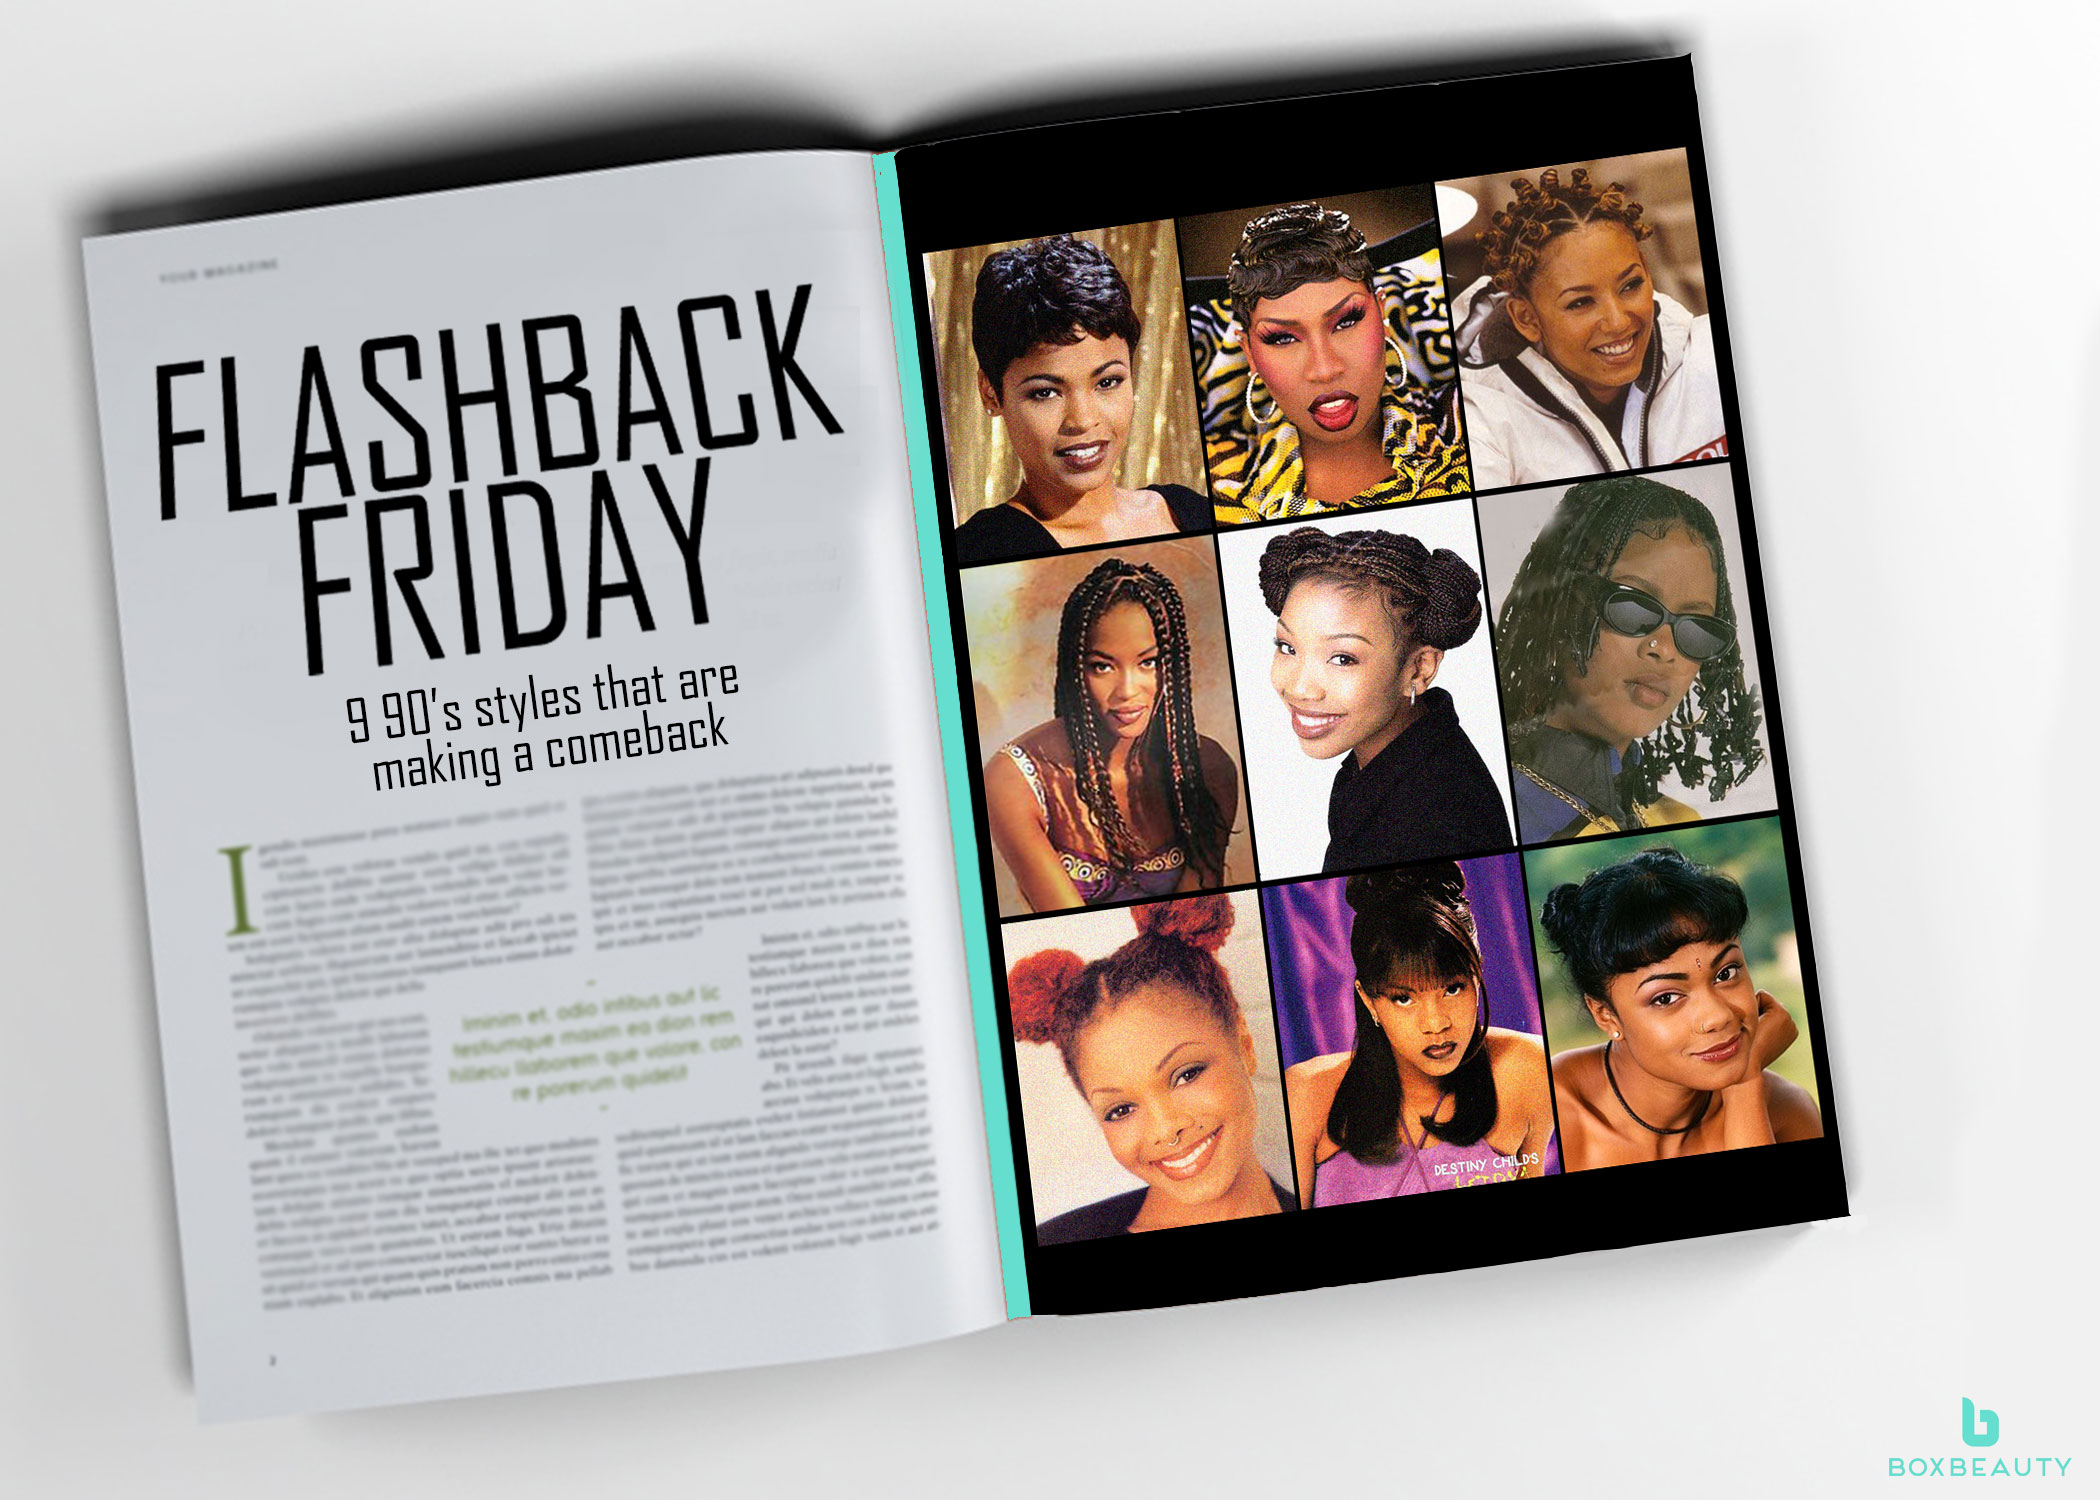 Flashback Friday: 9 90's styles that are making a comeback